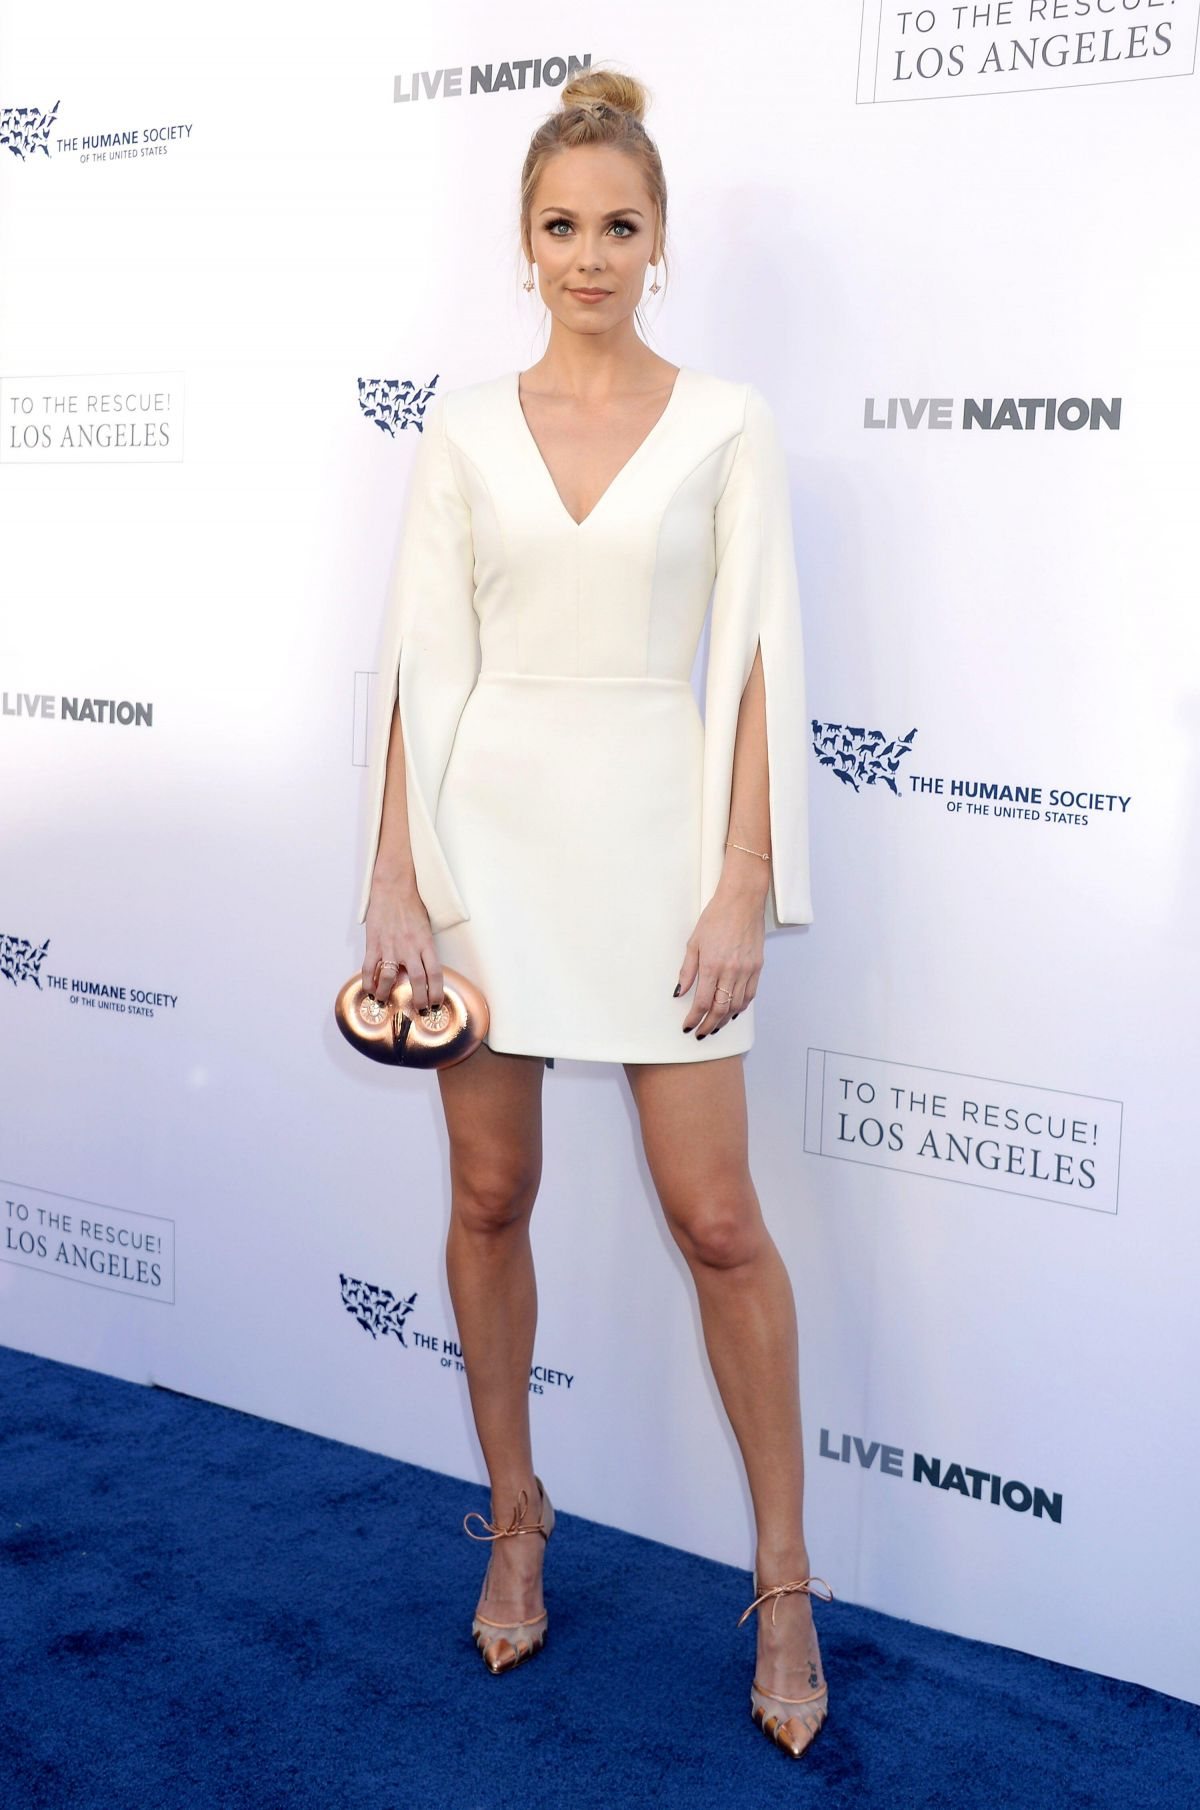 LAURA VANDERVOORT at To the Rescue! Fundraising Gala in Los Angeles 04/22/2017